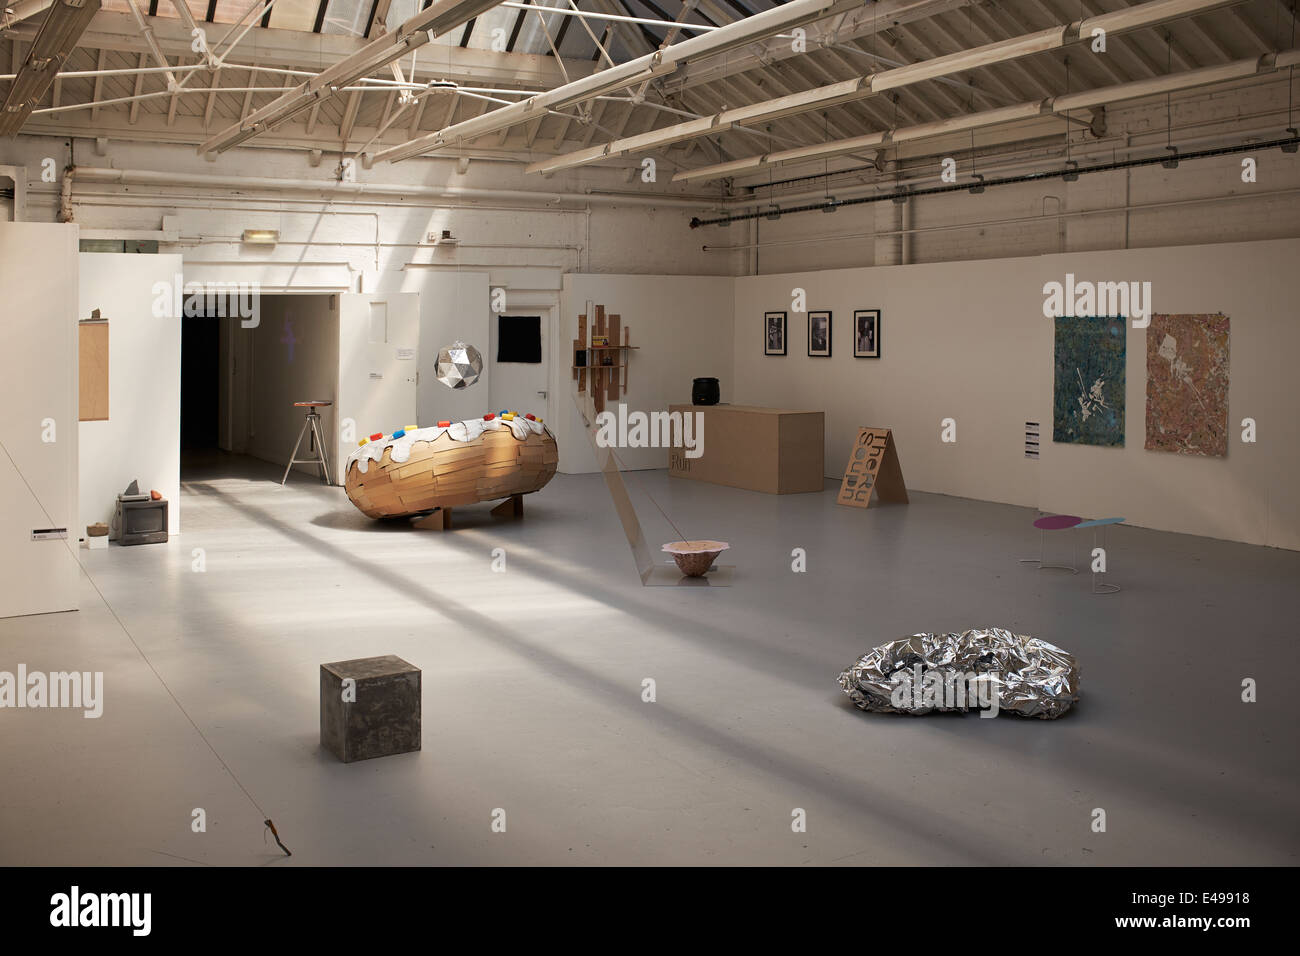 Fine Art and Sculpture degree show exhibition at the School of Art and Design at Manchester Metropolitan University - Stock Image